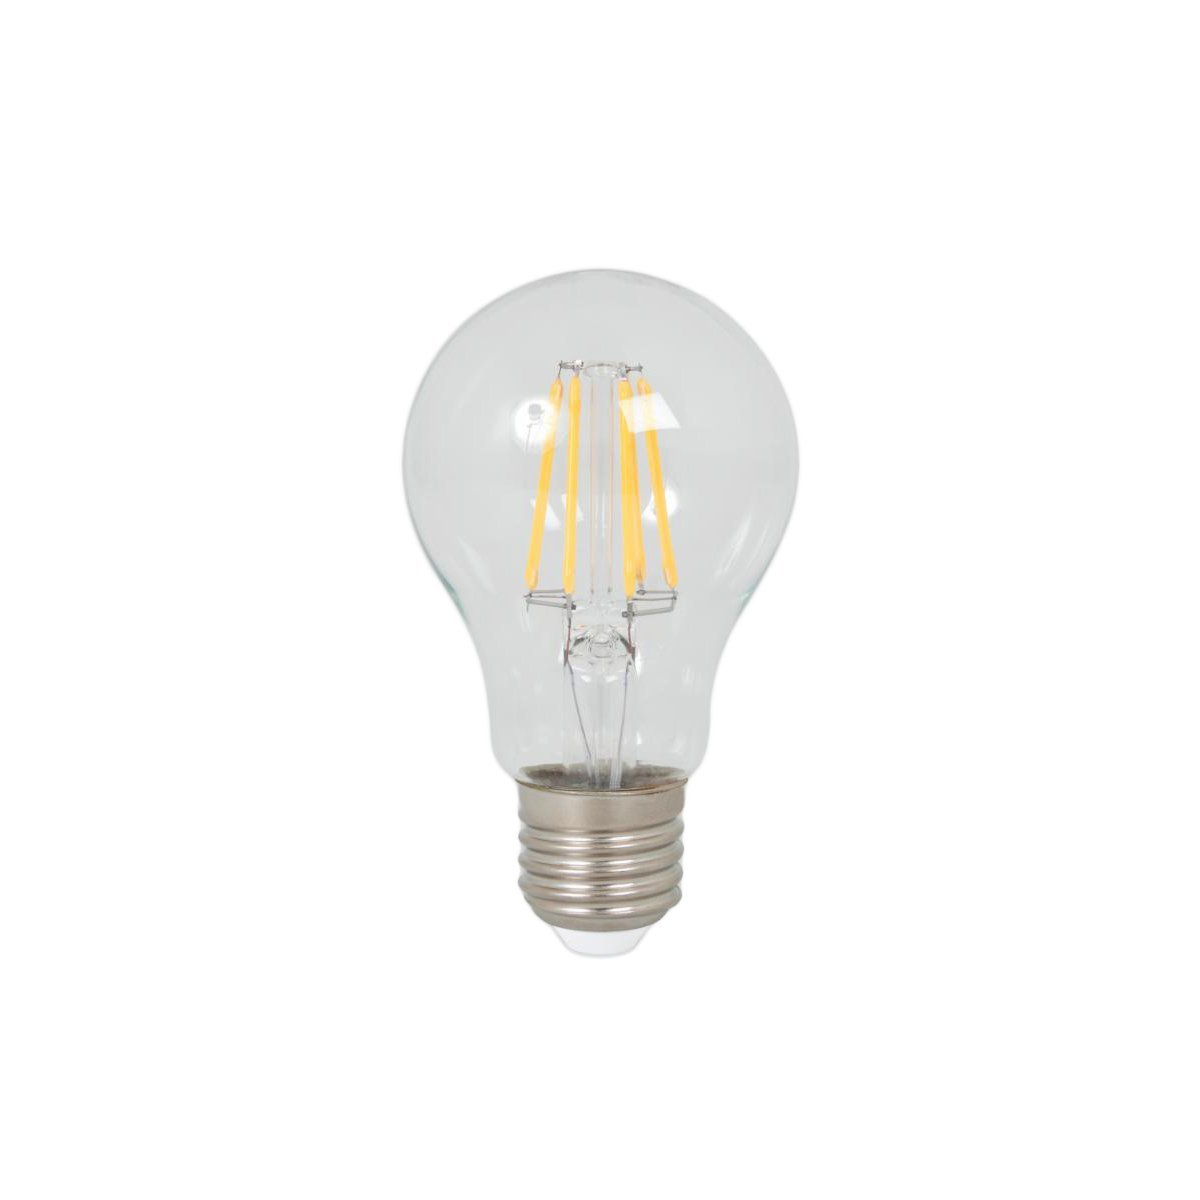 LED-lampa, 600lm, E27 - Posh Living